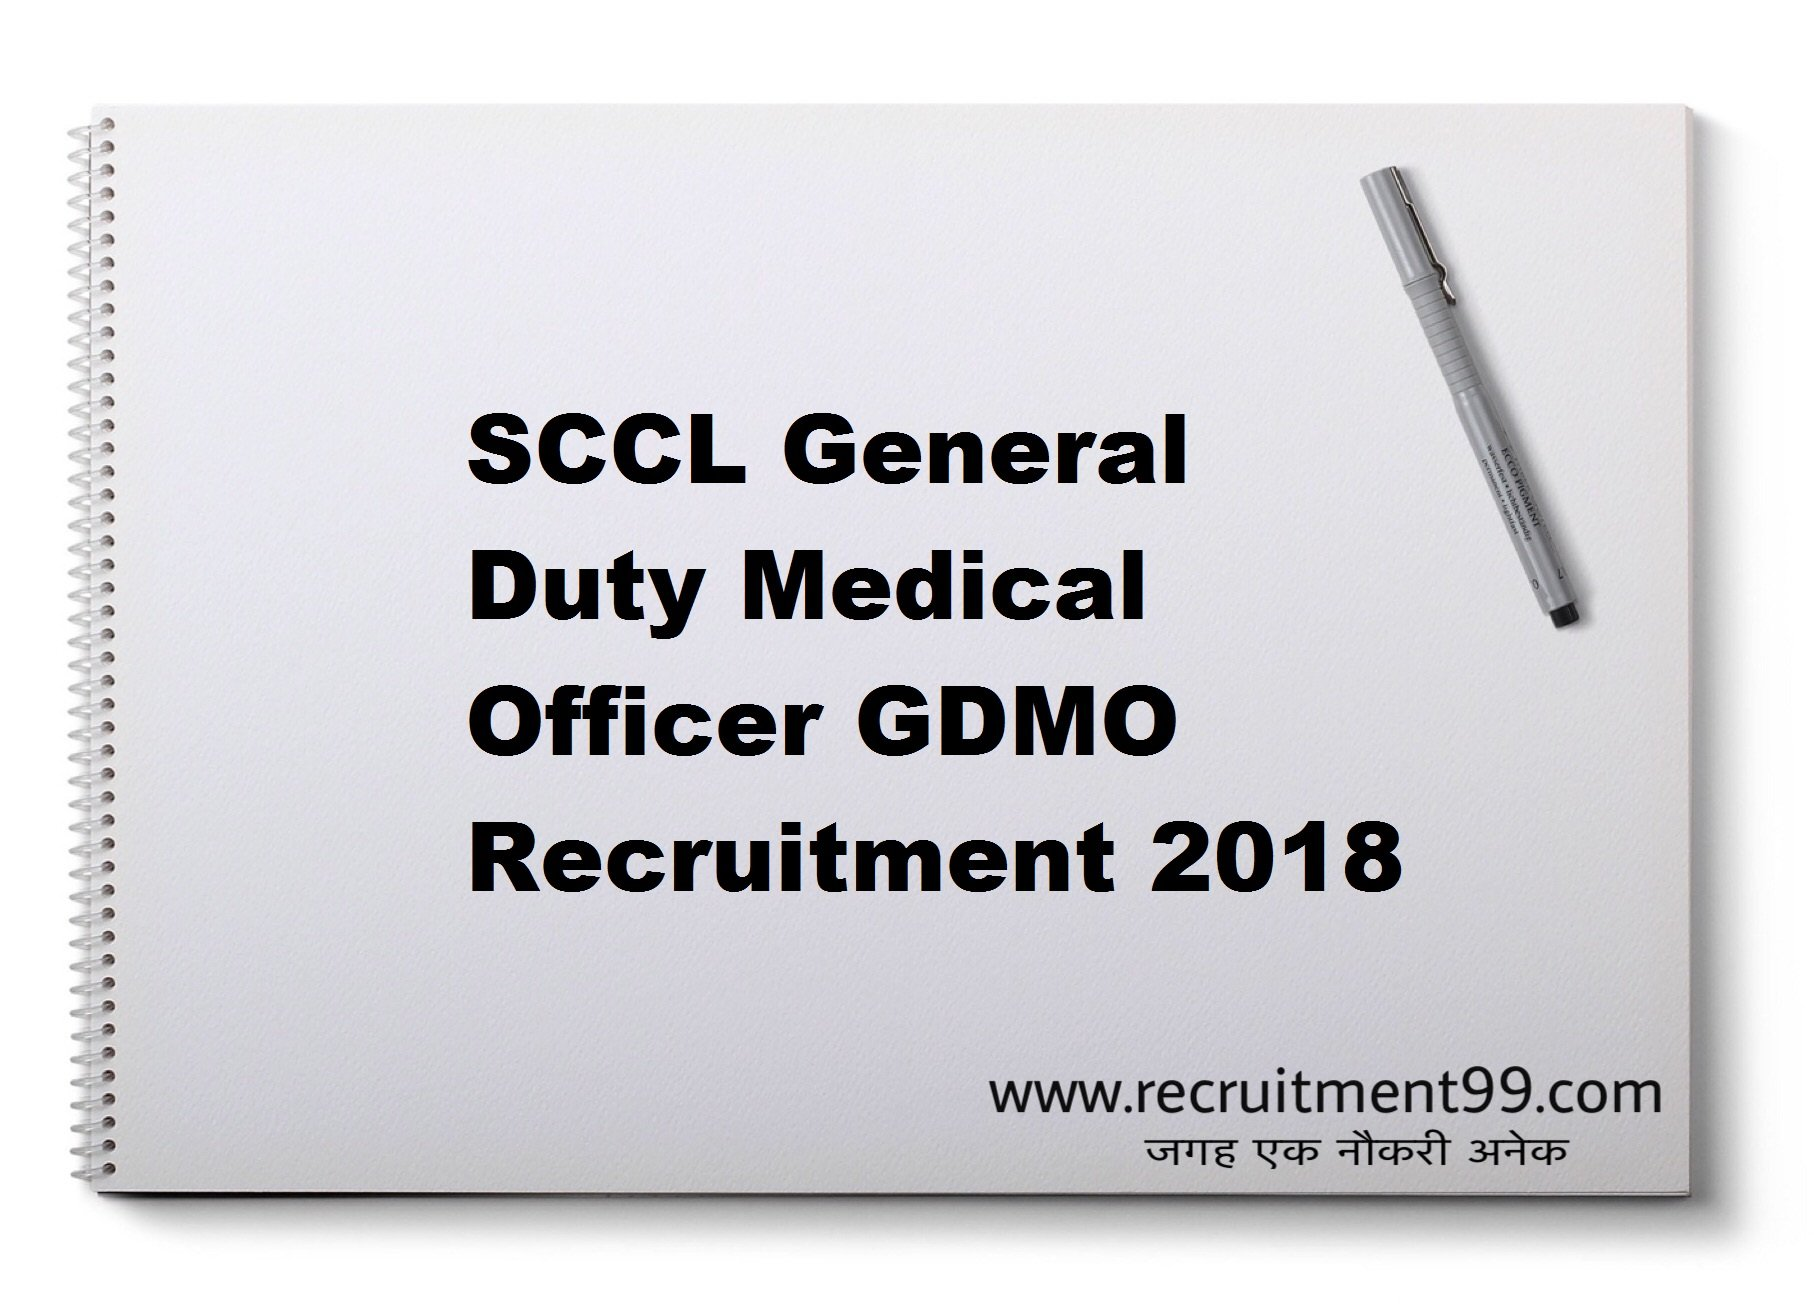 SCCL GDMO Recruitment Hall Ticket Result 2018